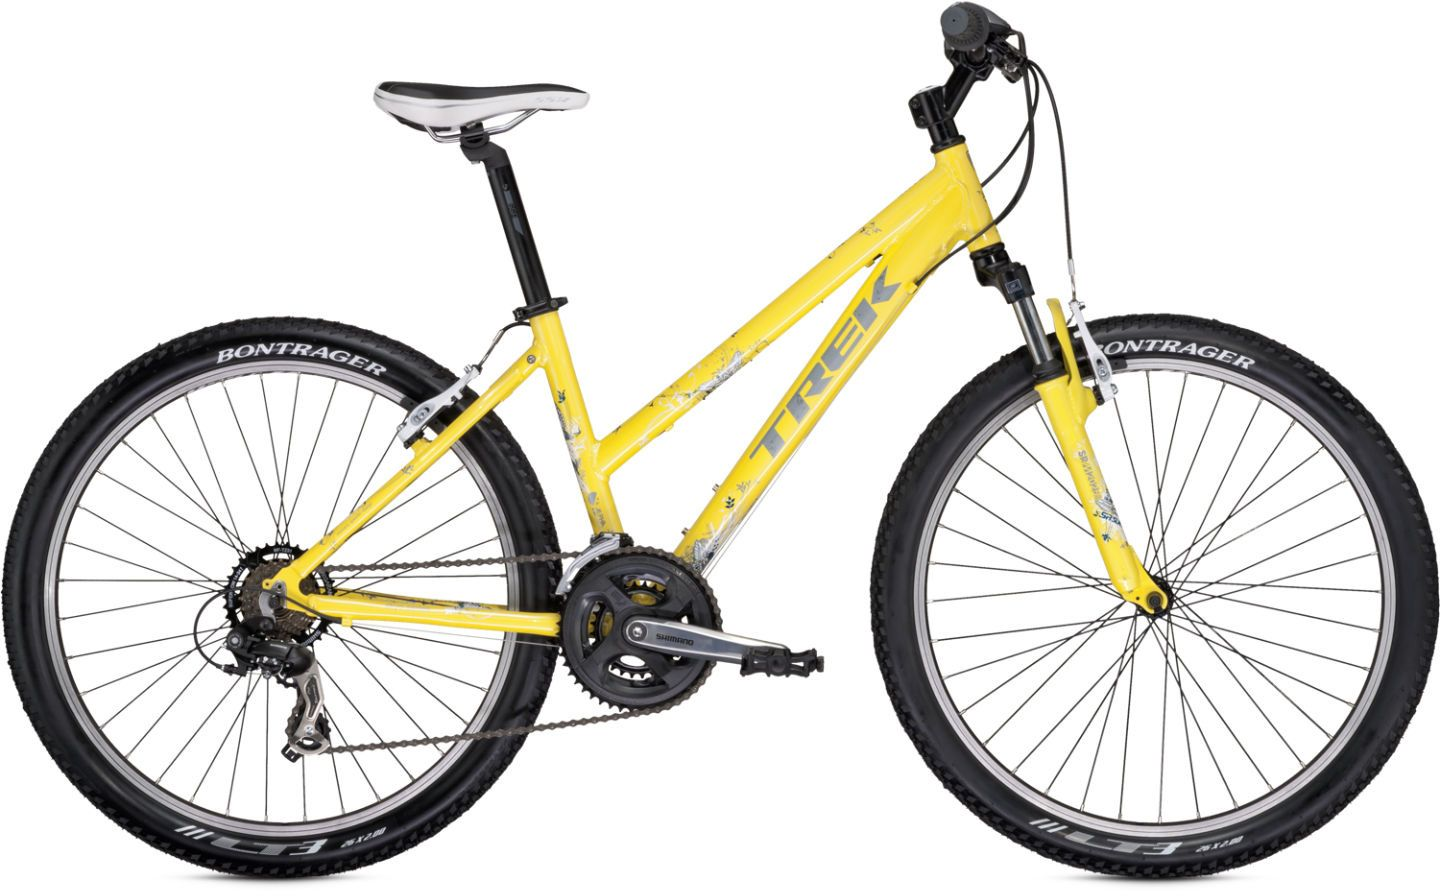 f07e4748301 Trek Skye - Mad Dog Cycles Bike Shop Canary Yellow Mountain Bike ...